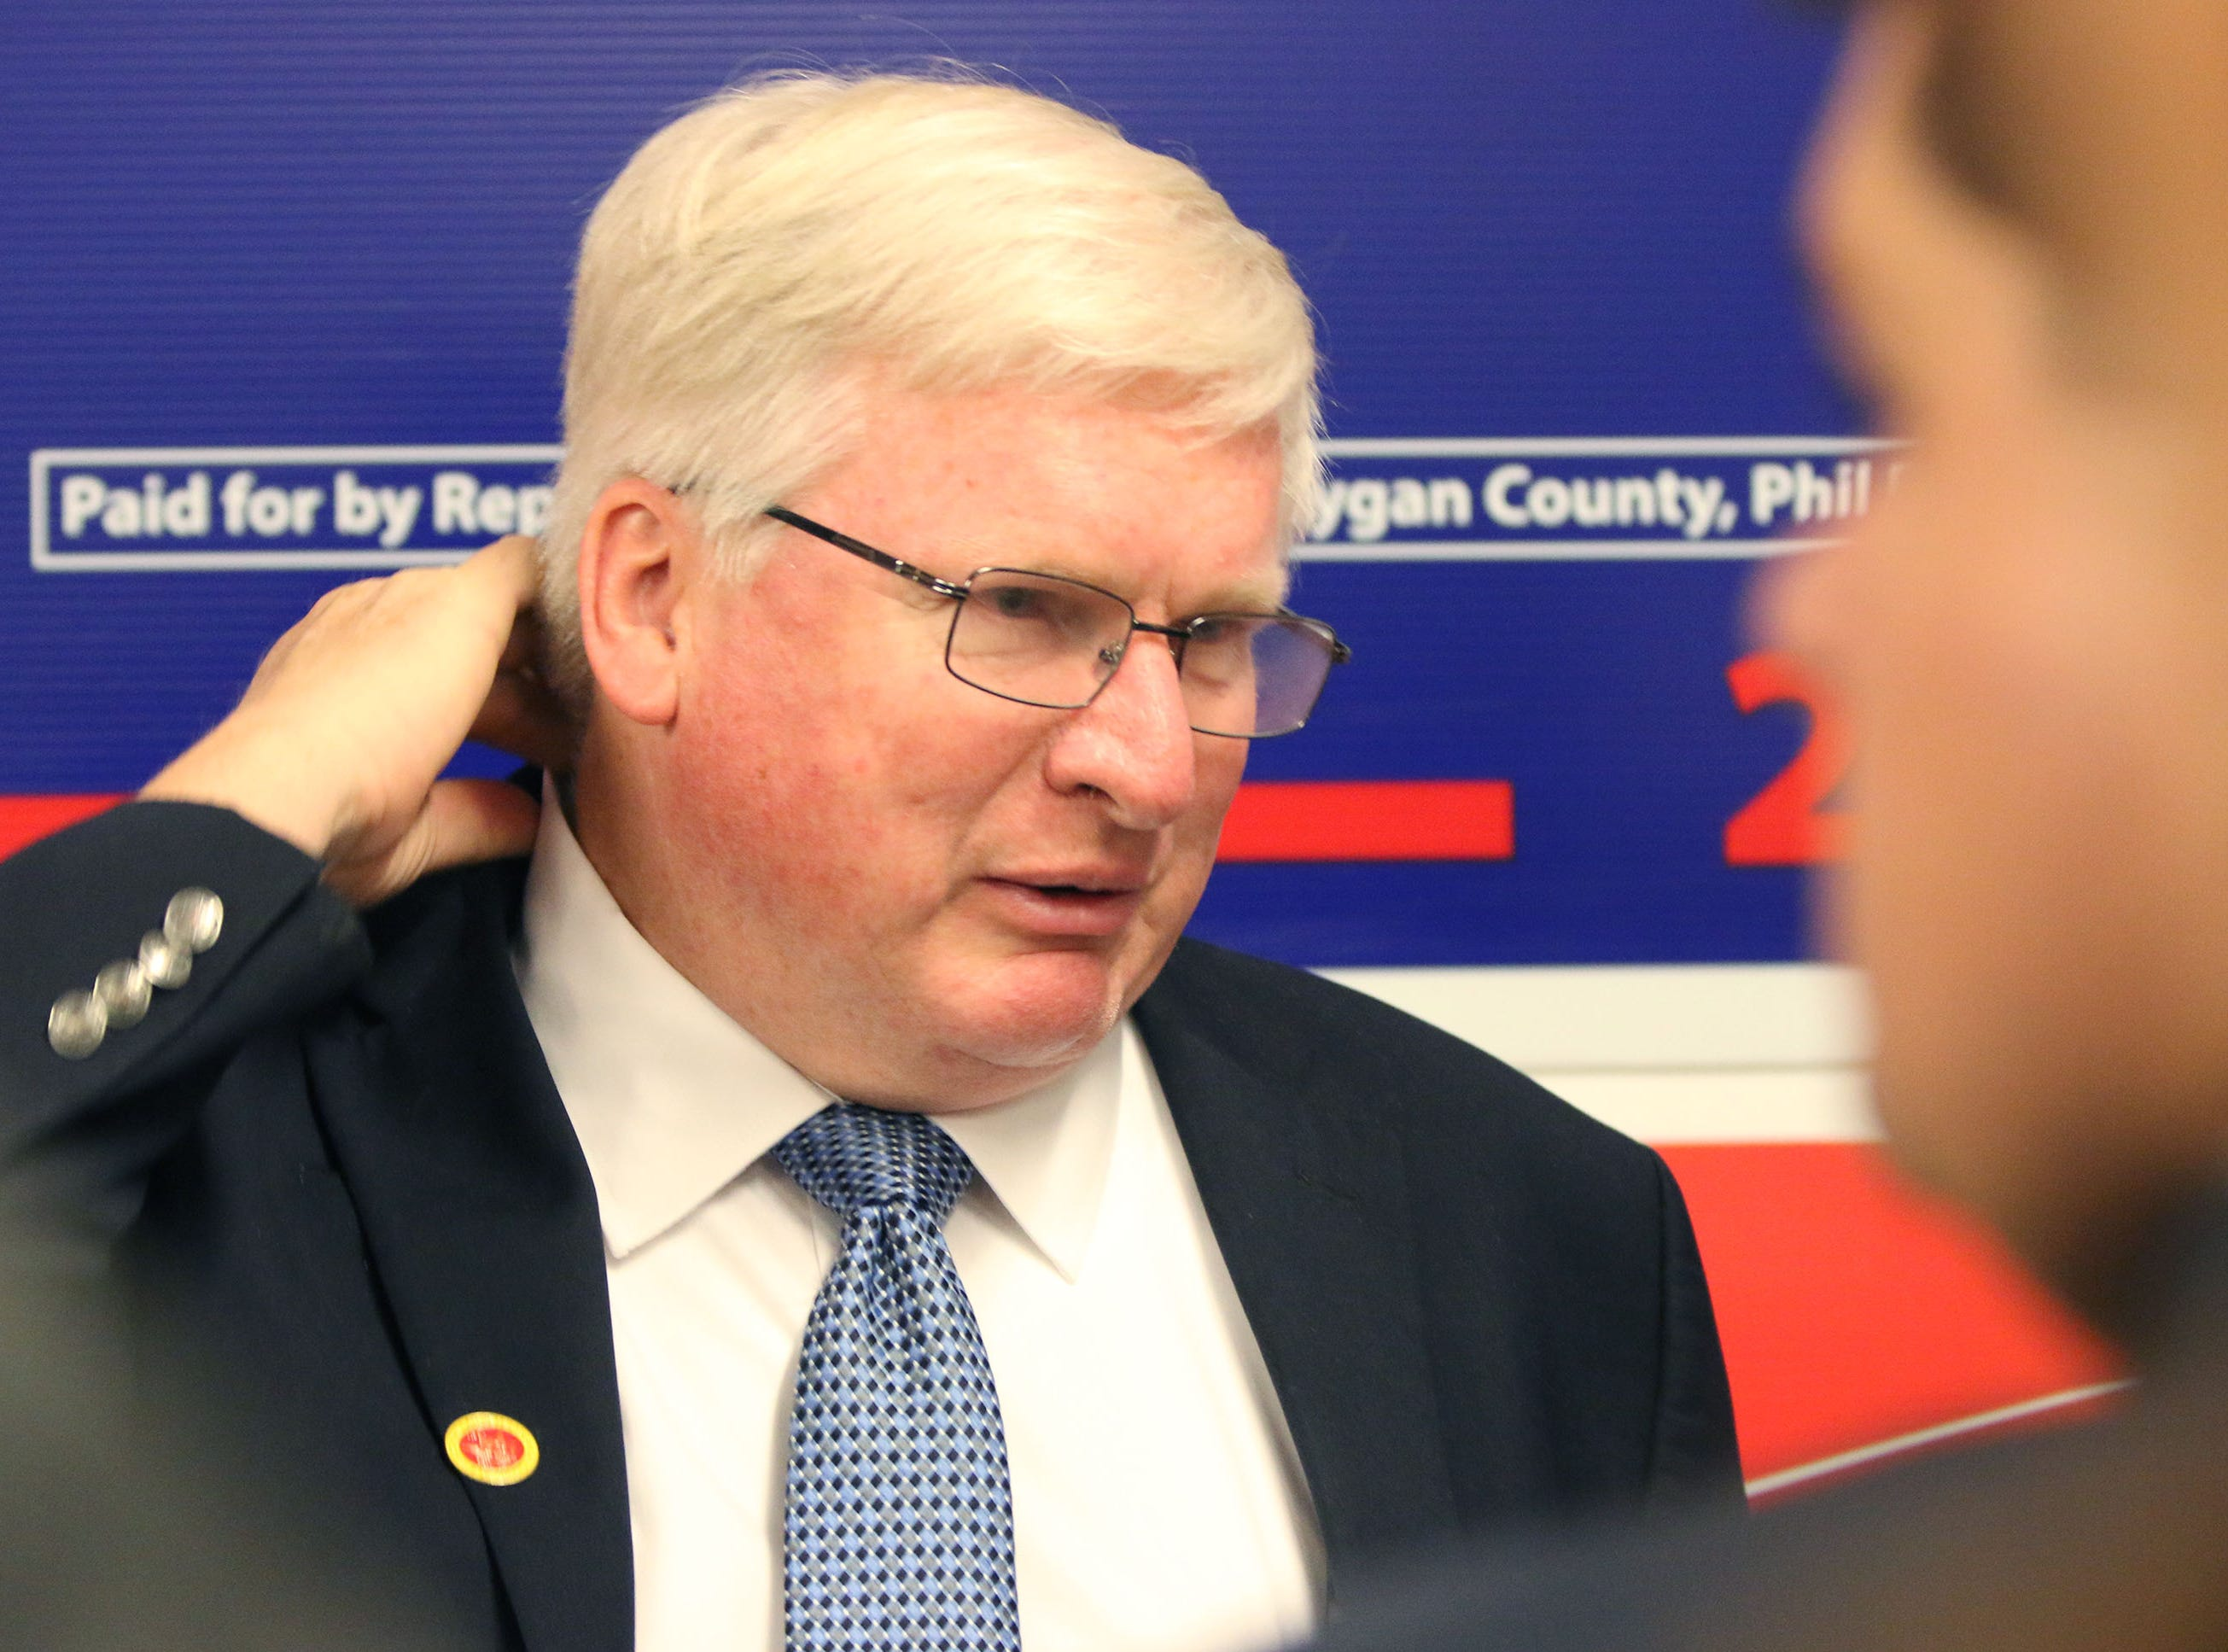 U.S. Representative Glenn Grothman adjusts his collar during a campaign stop at the GOP headquarters, Tuesday, October 30, 2018, in Sheboygan, Wis. Grothman and Eric Trump was in Sheboygan to rally support for Wisconsin Republicans.